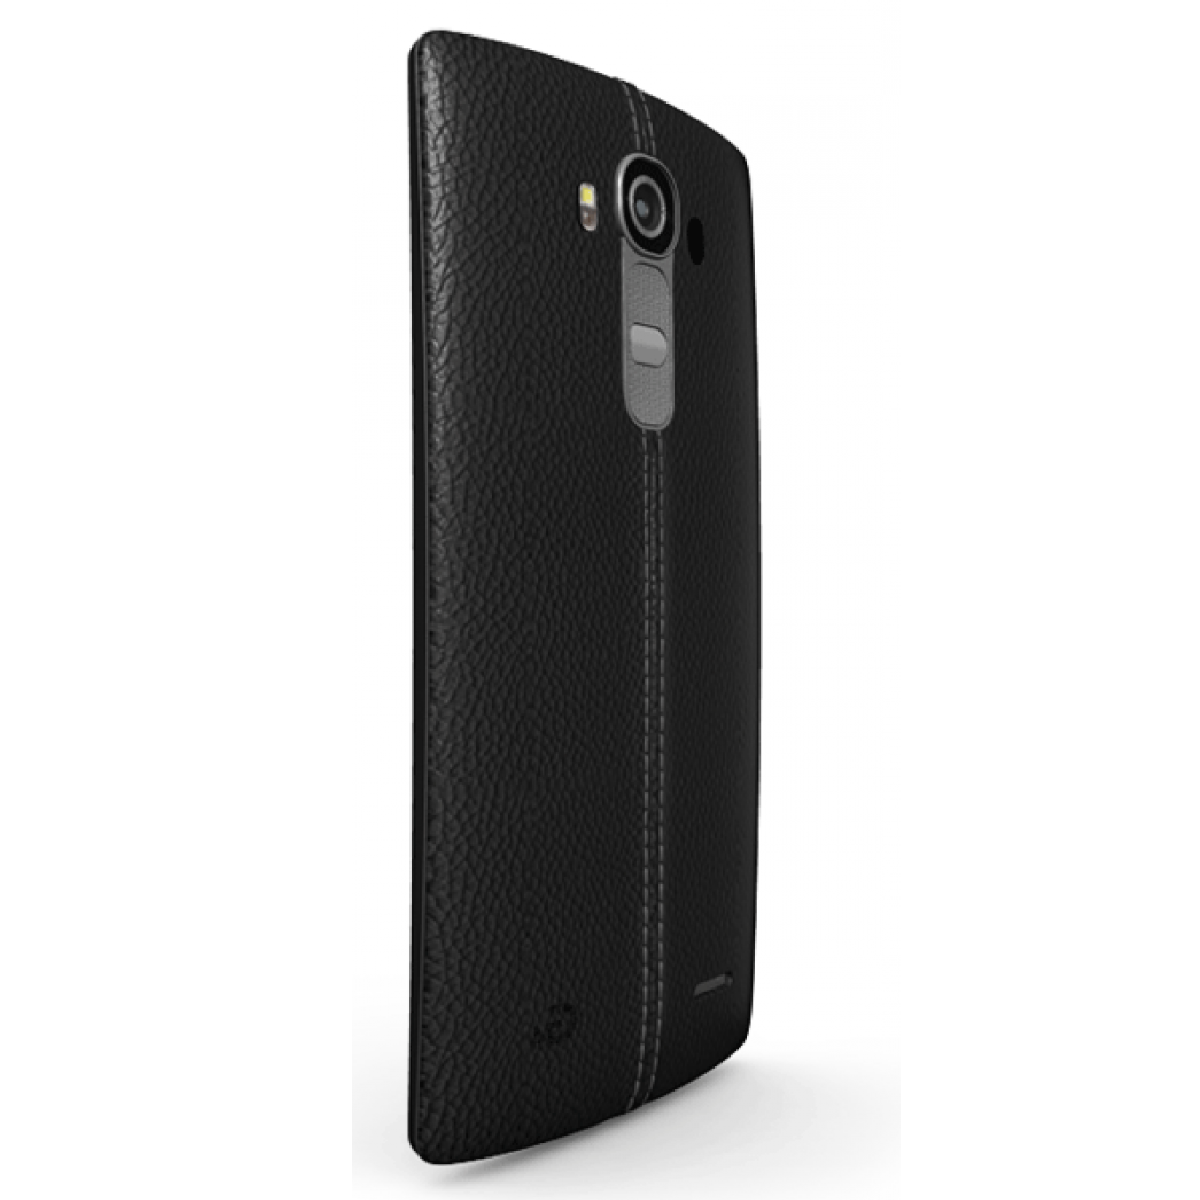 lg g4 h815 32gb unlocked gsm 4g lte hexa core android 16mp. Black Bedroom Furniture Sets. Home Design Ideas